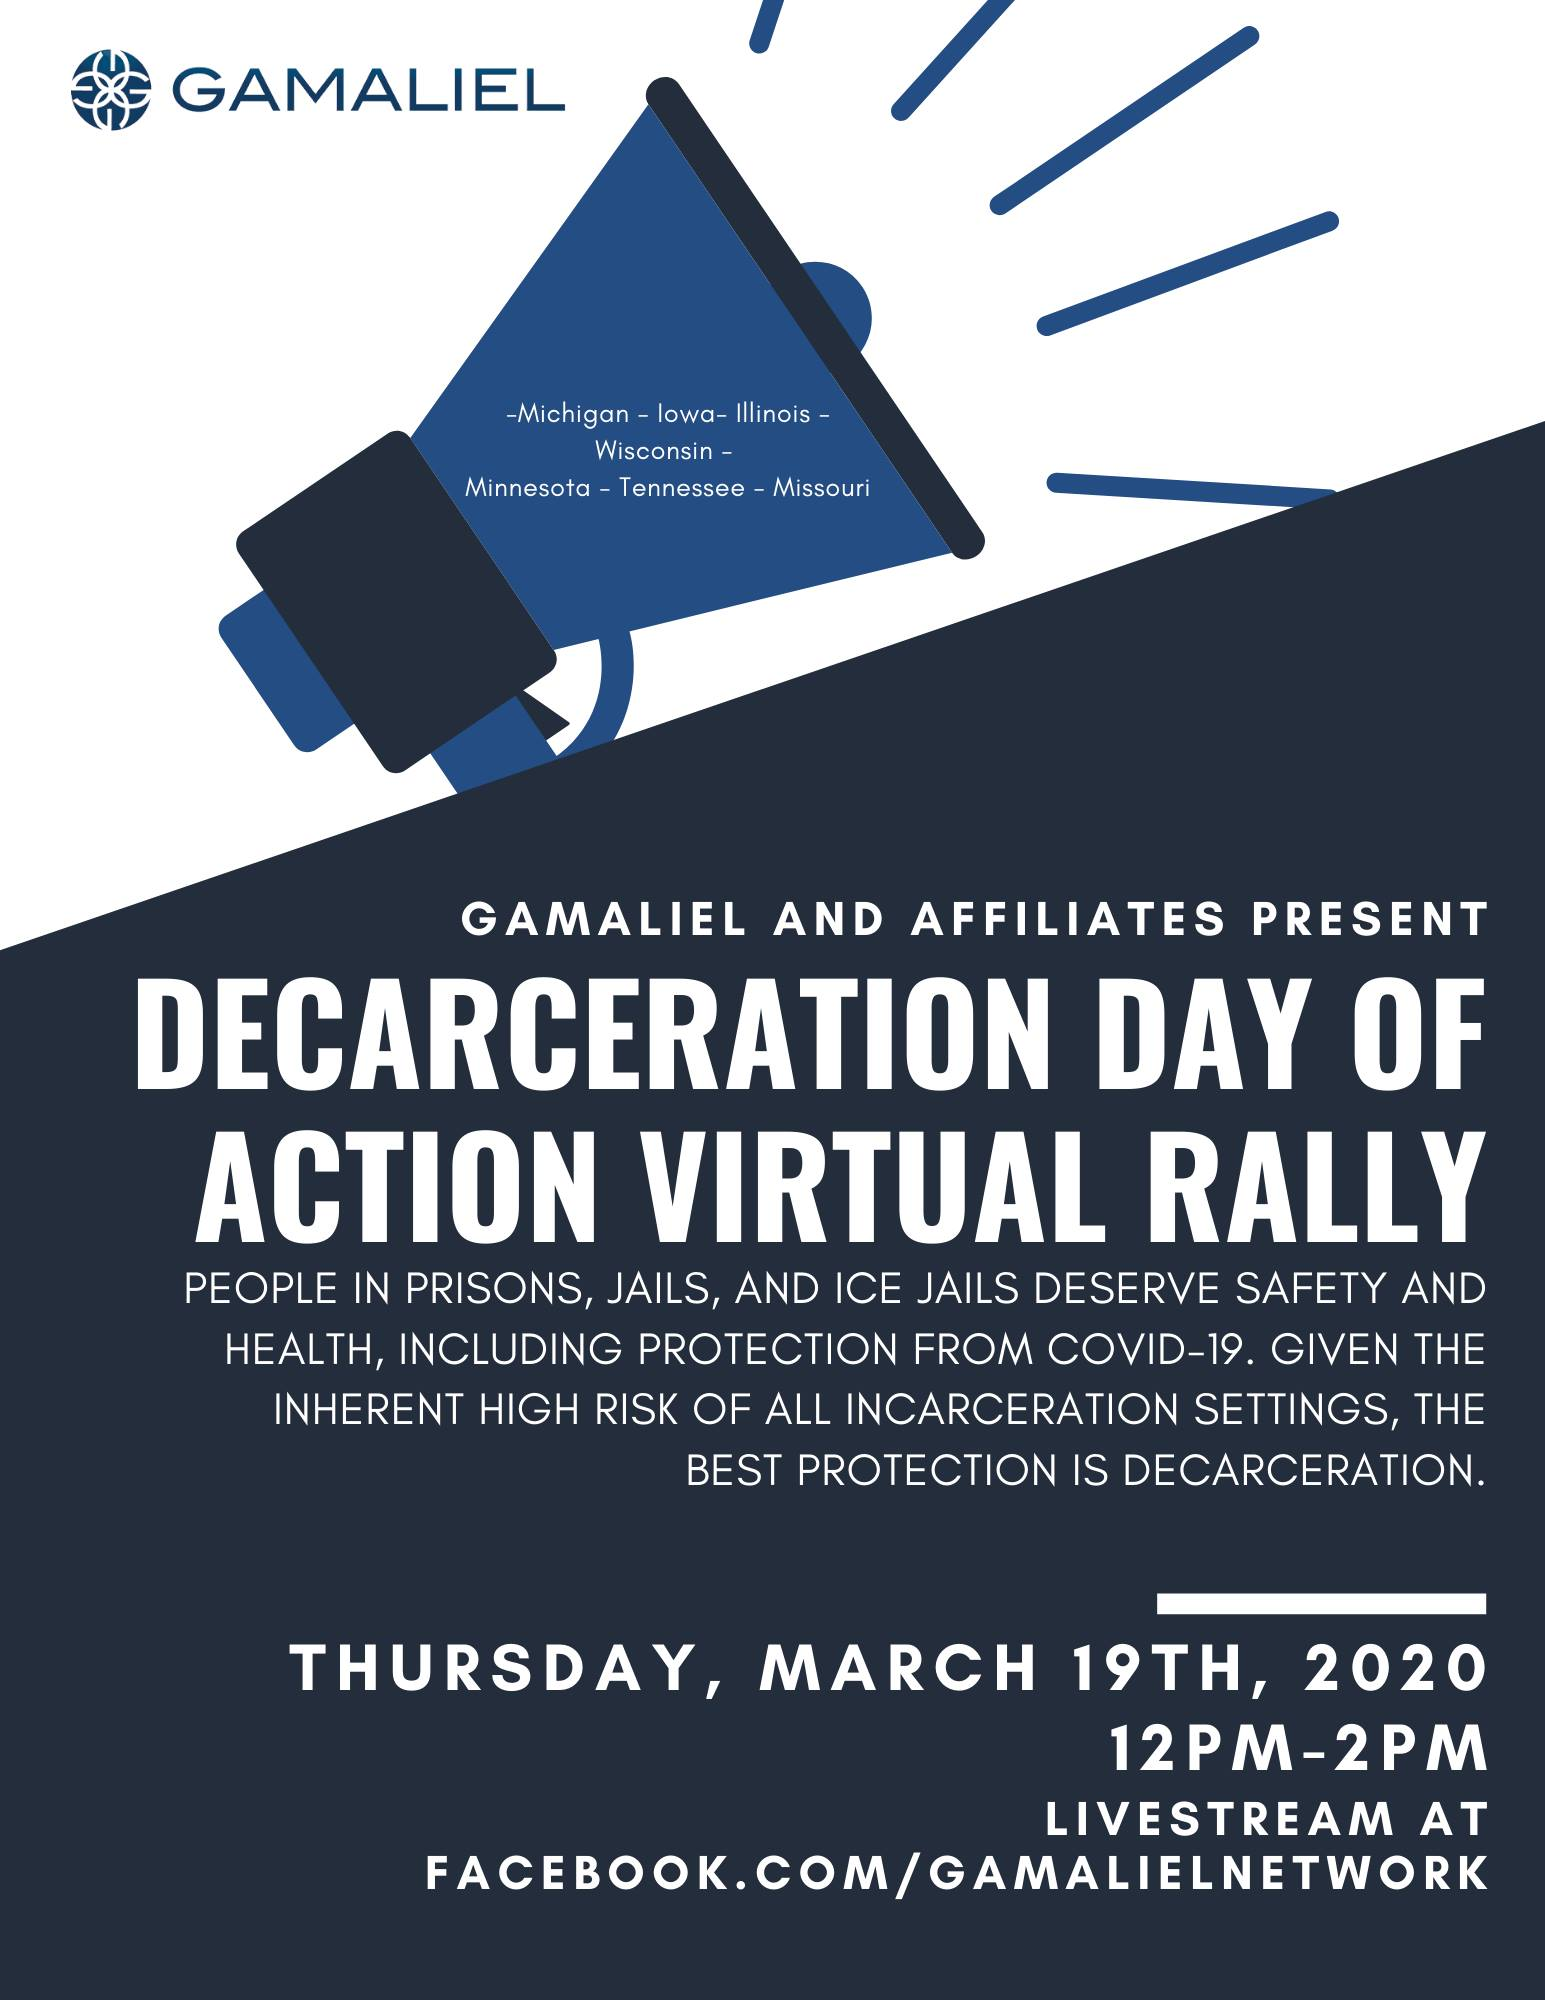 decarceration day of action virtual rally